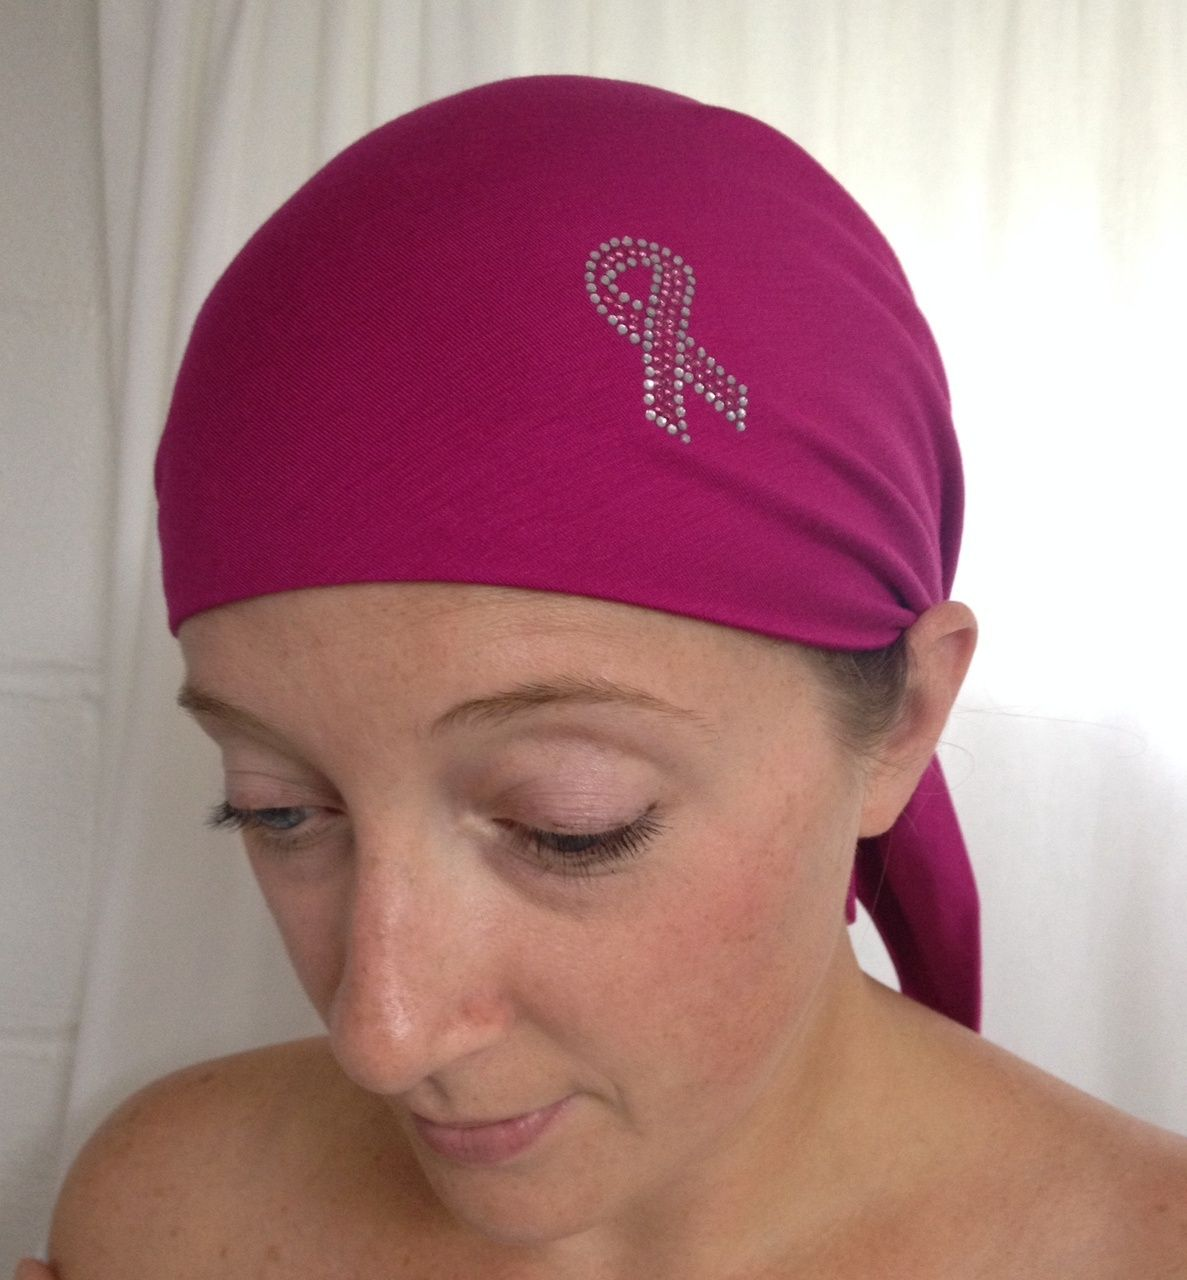 Sparkle My Head Scarves - Breast Cancer Awareness Ribbon Self Tie Head Scarf #tieheadscarves